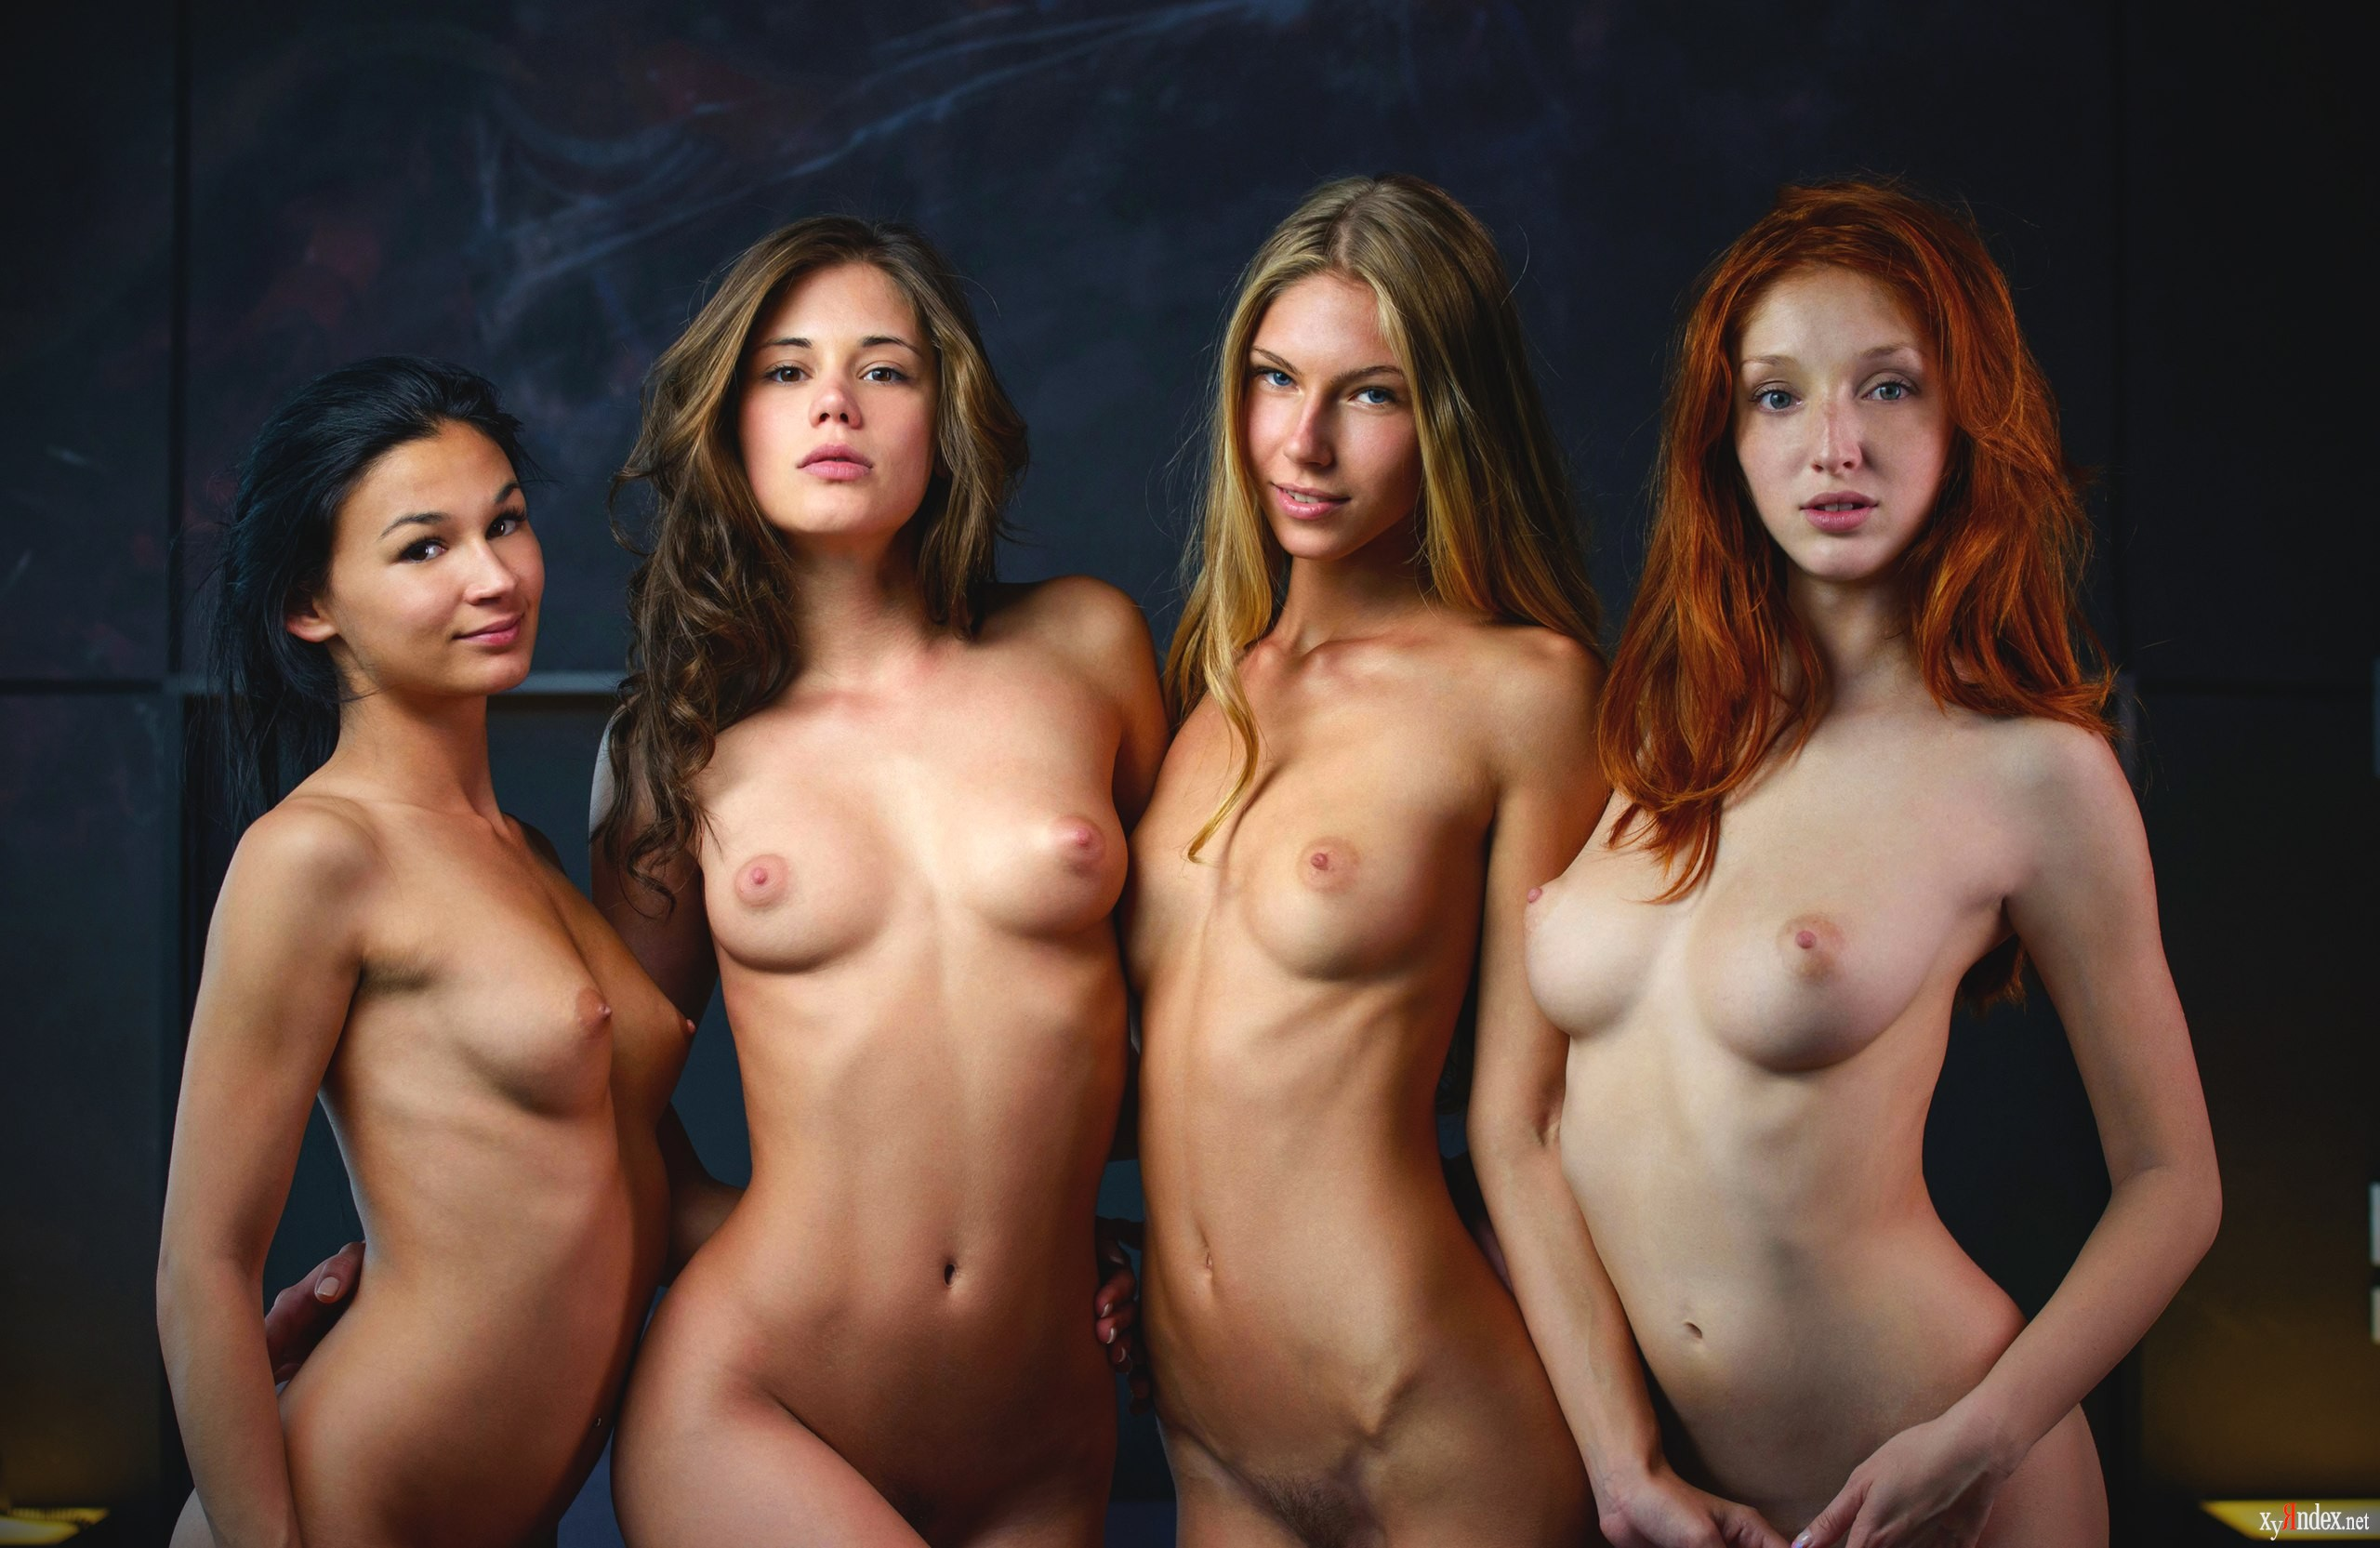 Naked Group Pictures